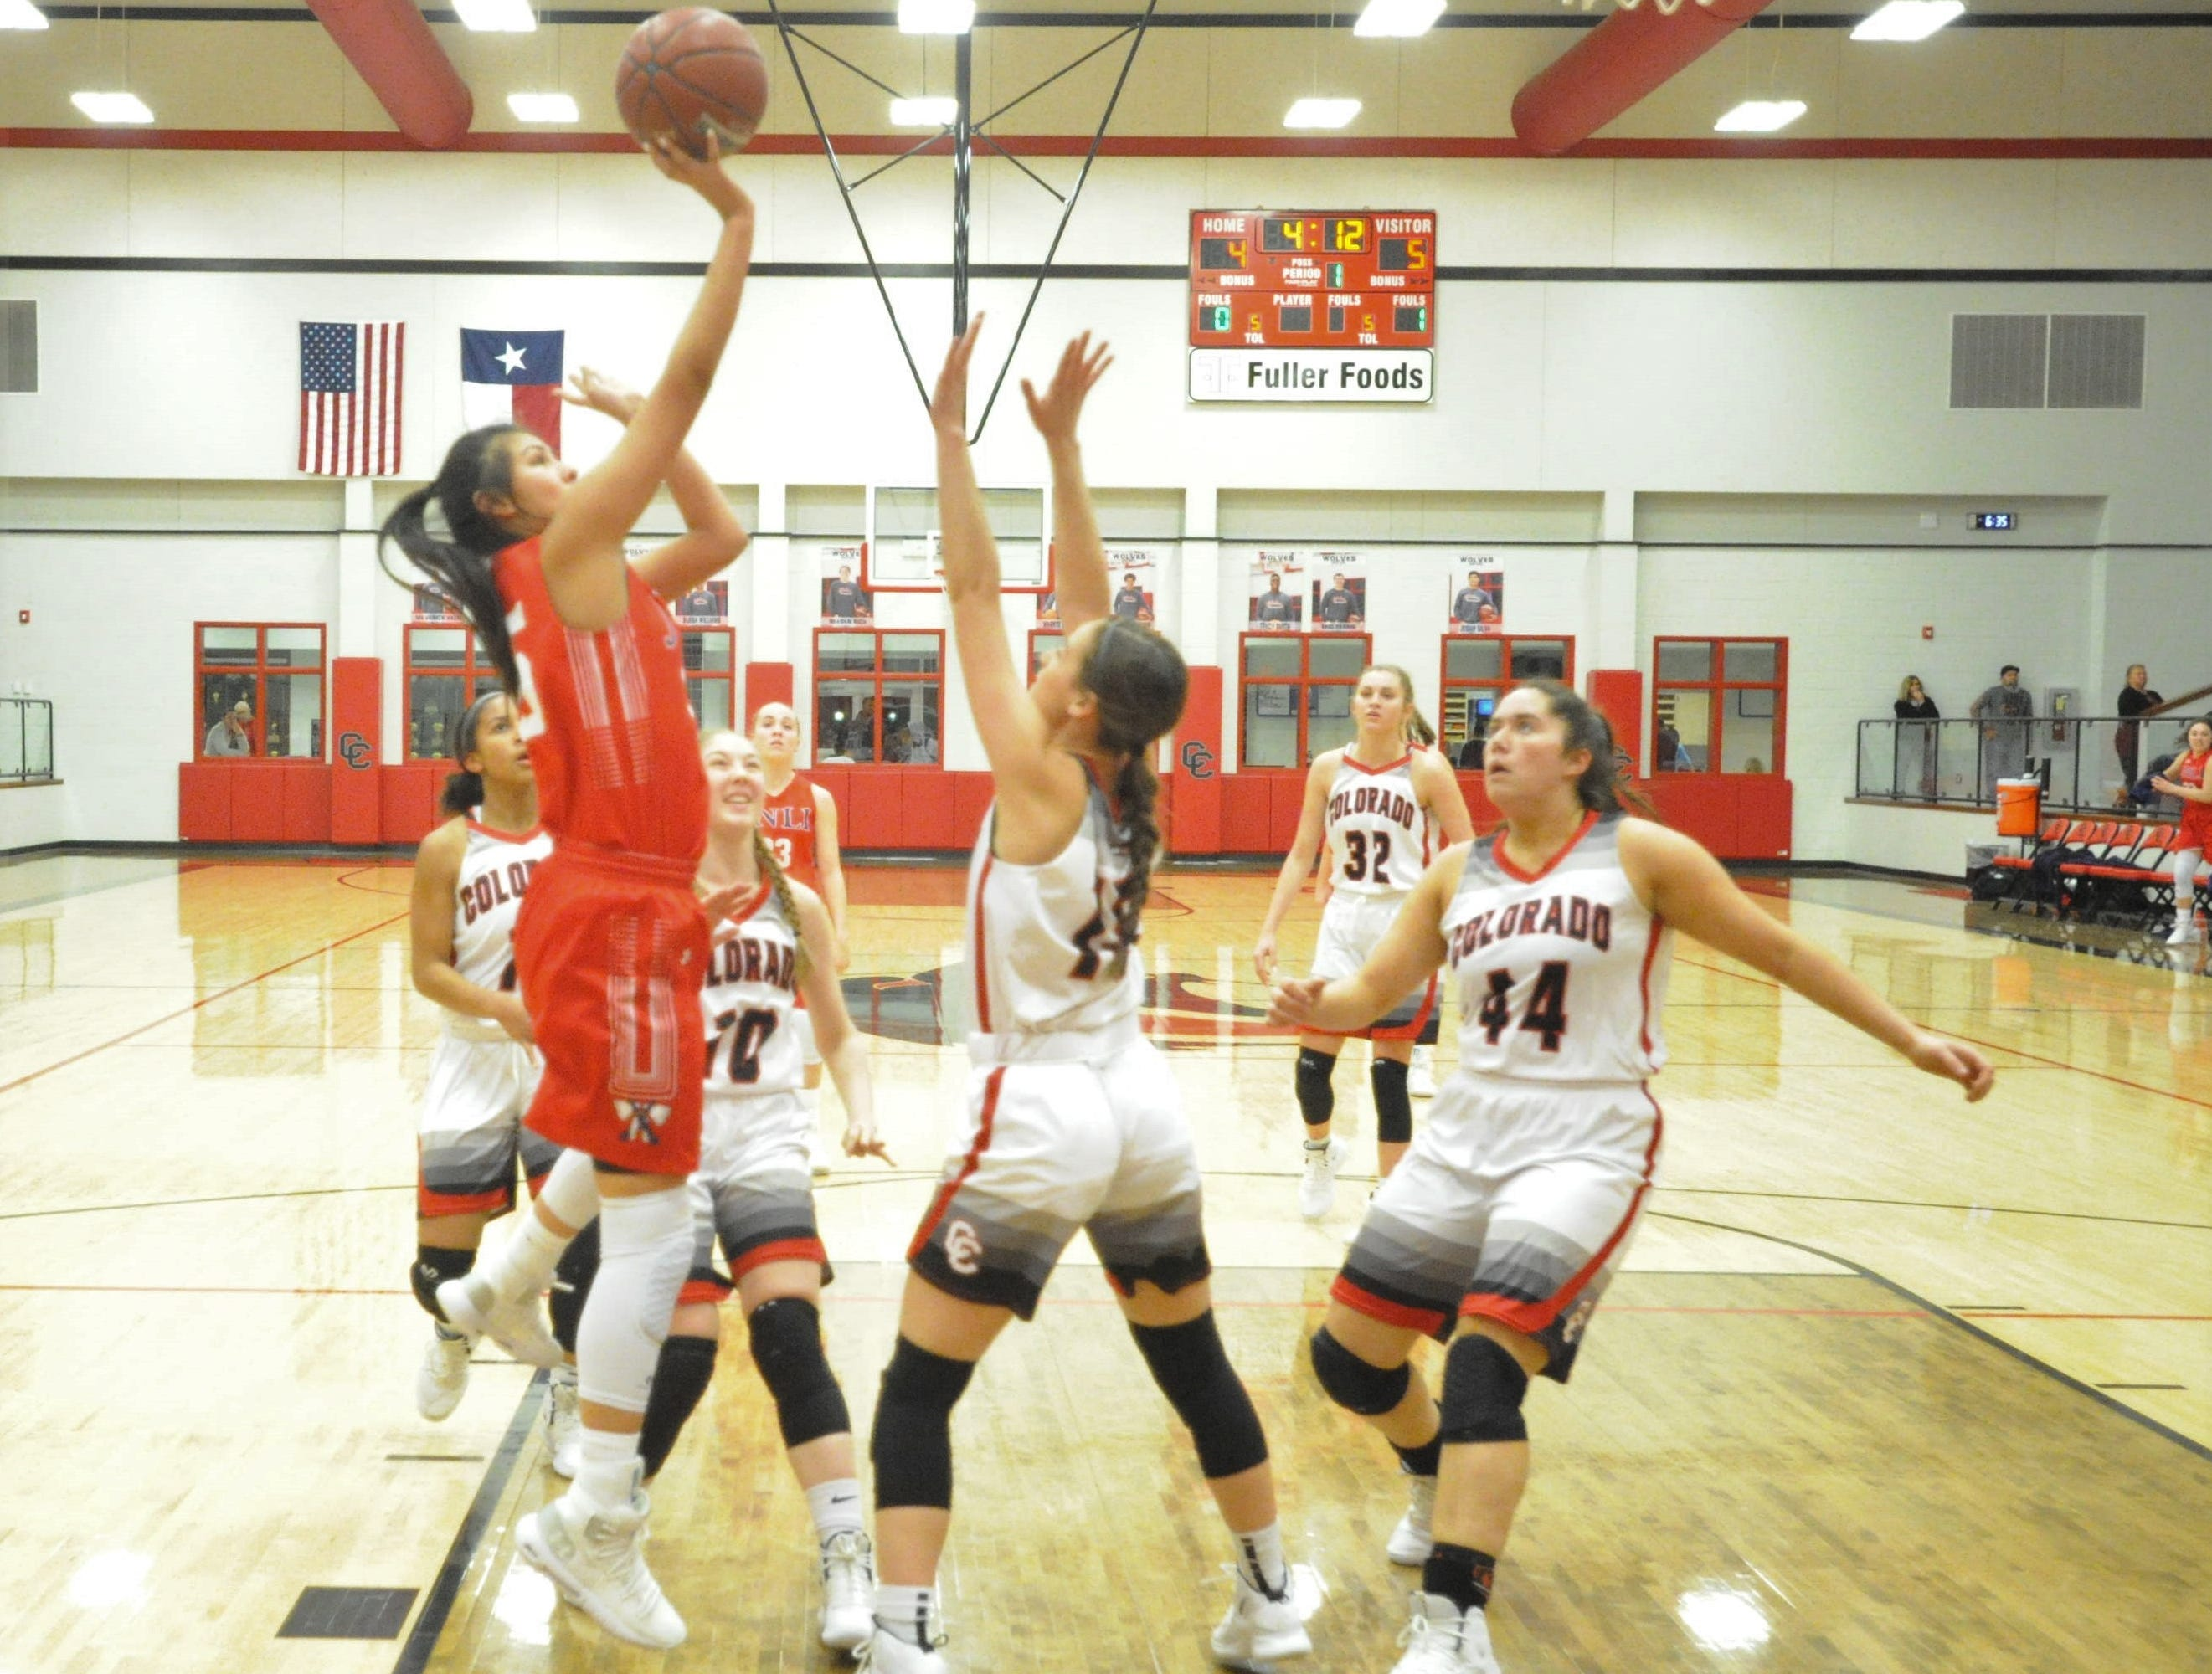 Jim Ned's Alexis Espinosa, left, goes for a shot in the lane in front of Colorado City guard Kaci Hudson. The Lady Indians topped the Lady Wolves 43-27 at Colorado High School on Jan. 15, 2019.